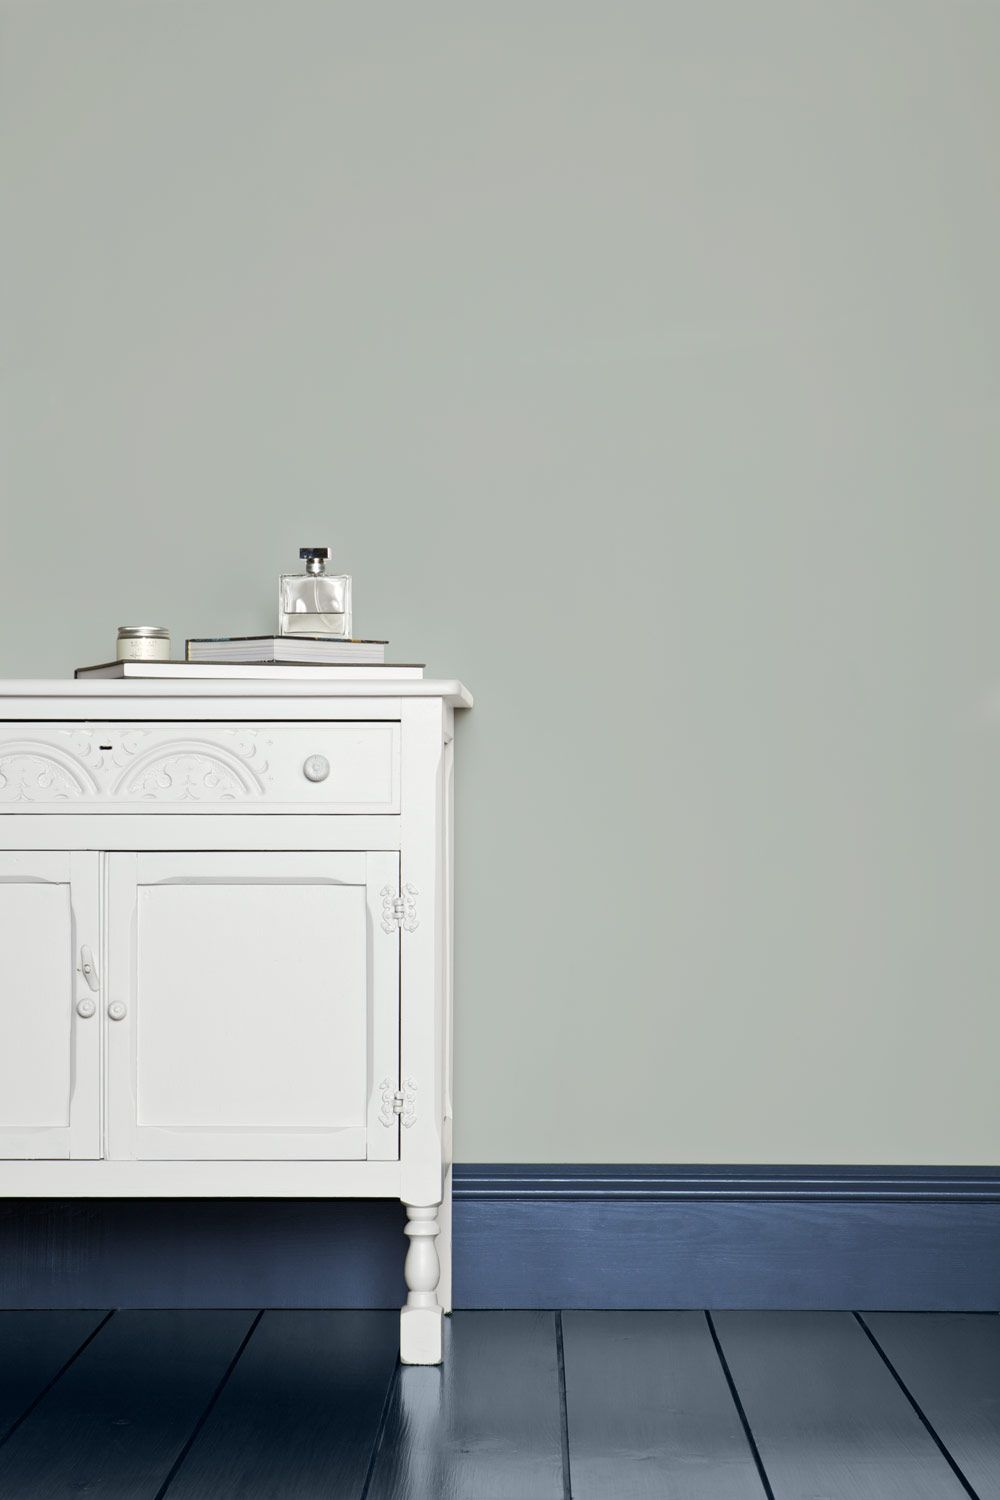 I Think These Colours Together Are Amazing Farrow And Ball Always Make Special Paints Floor Colors Skylight Living Room Farrow Ball